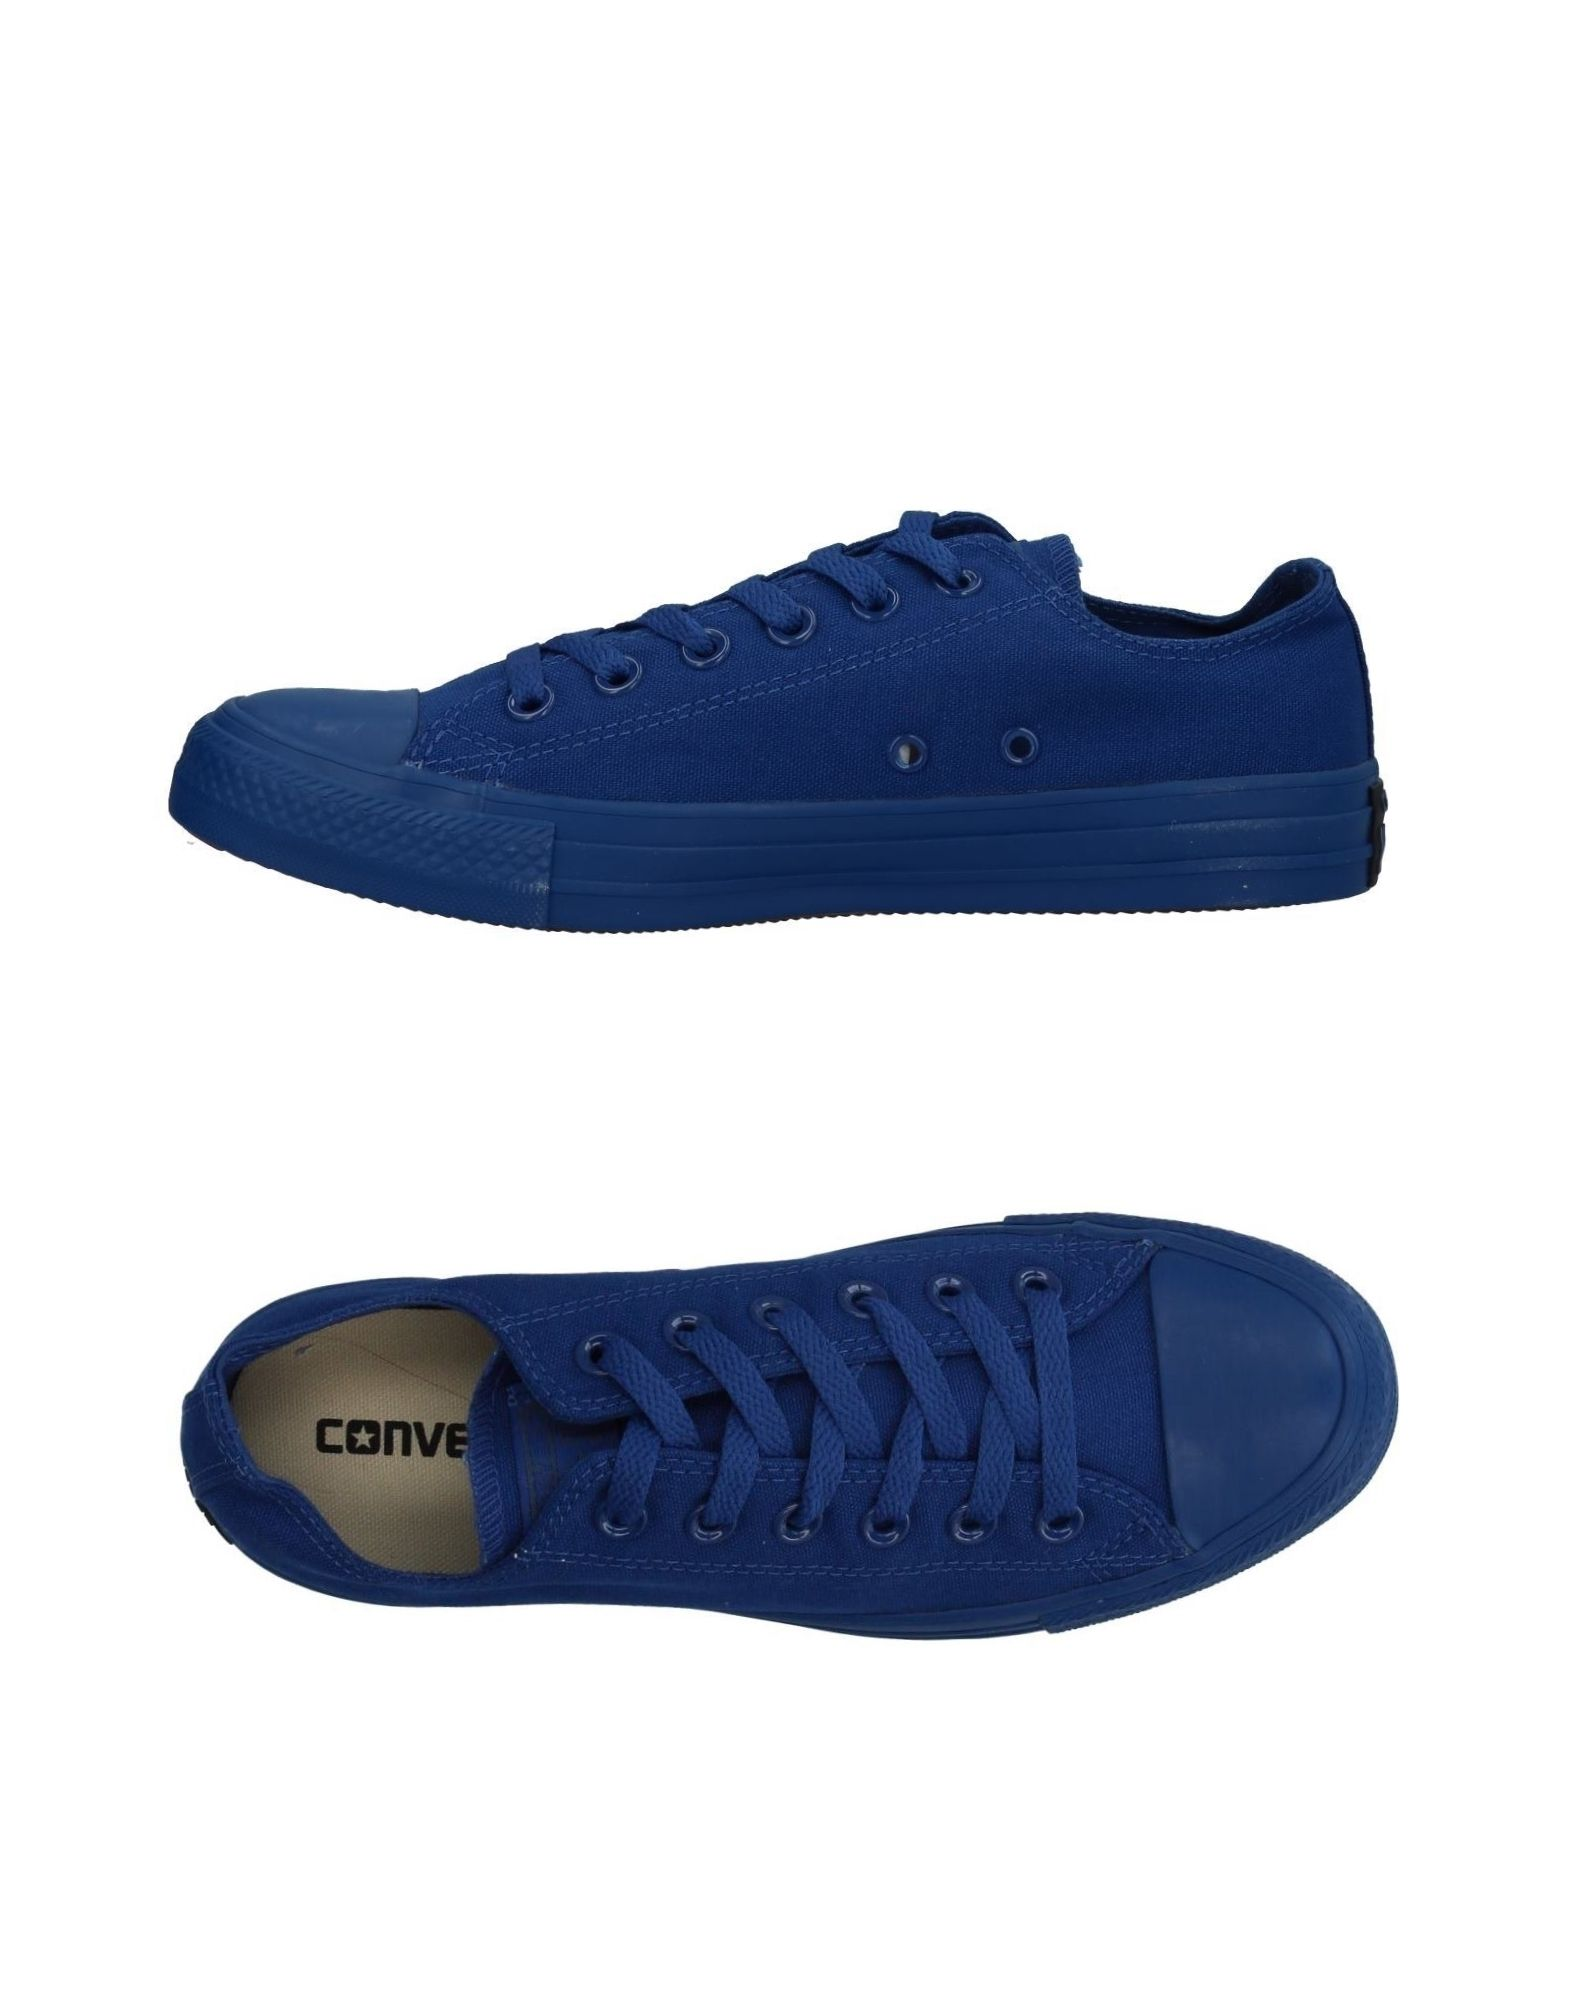 Converse Sneakers All Star Sneakers Converse Damen  11416611DL  4d8ce6